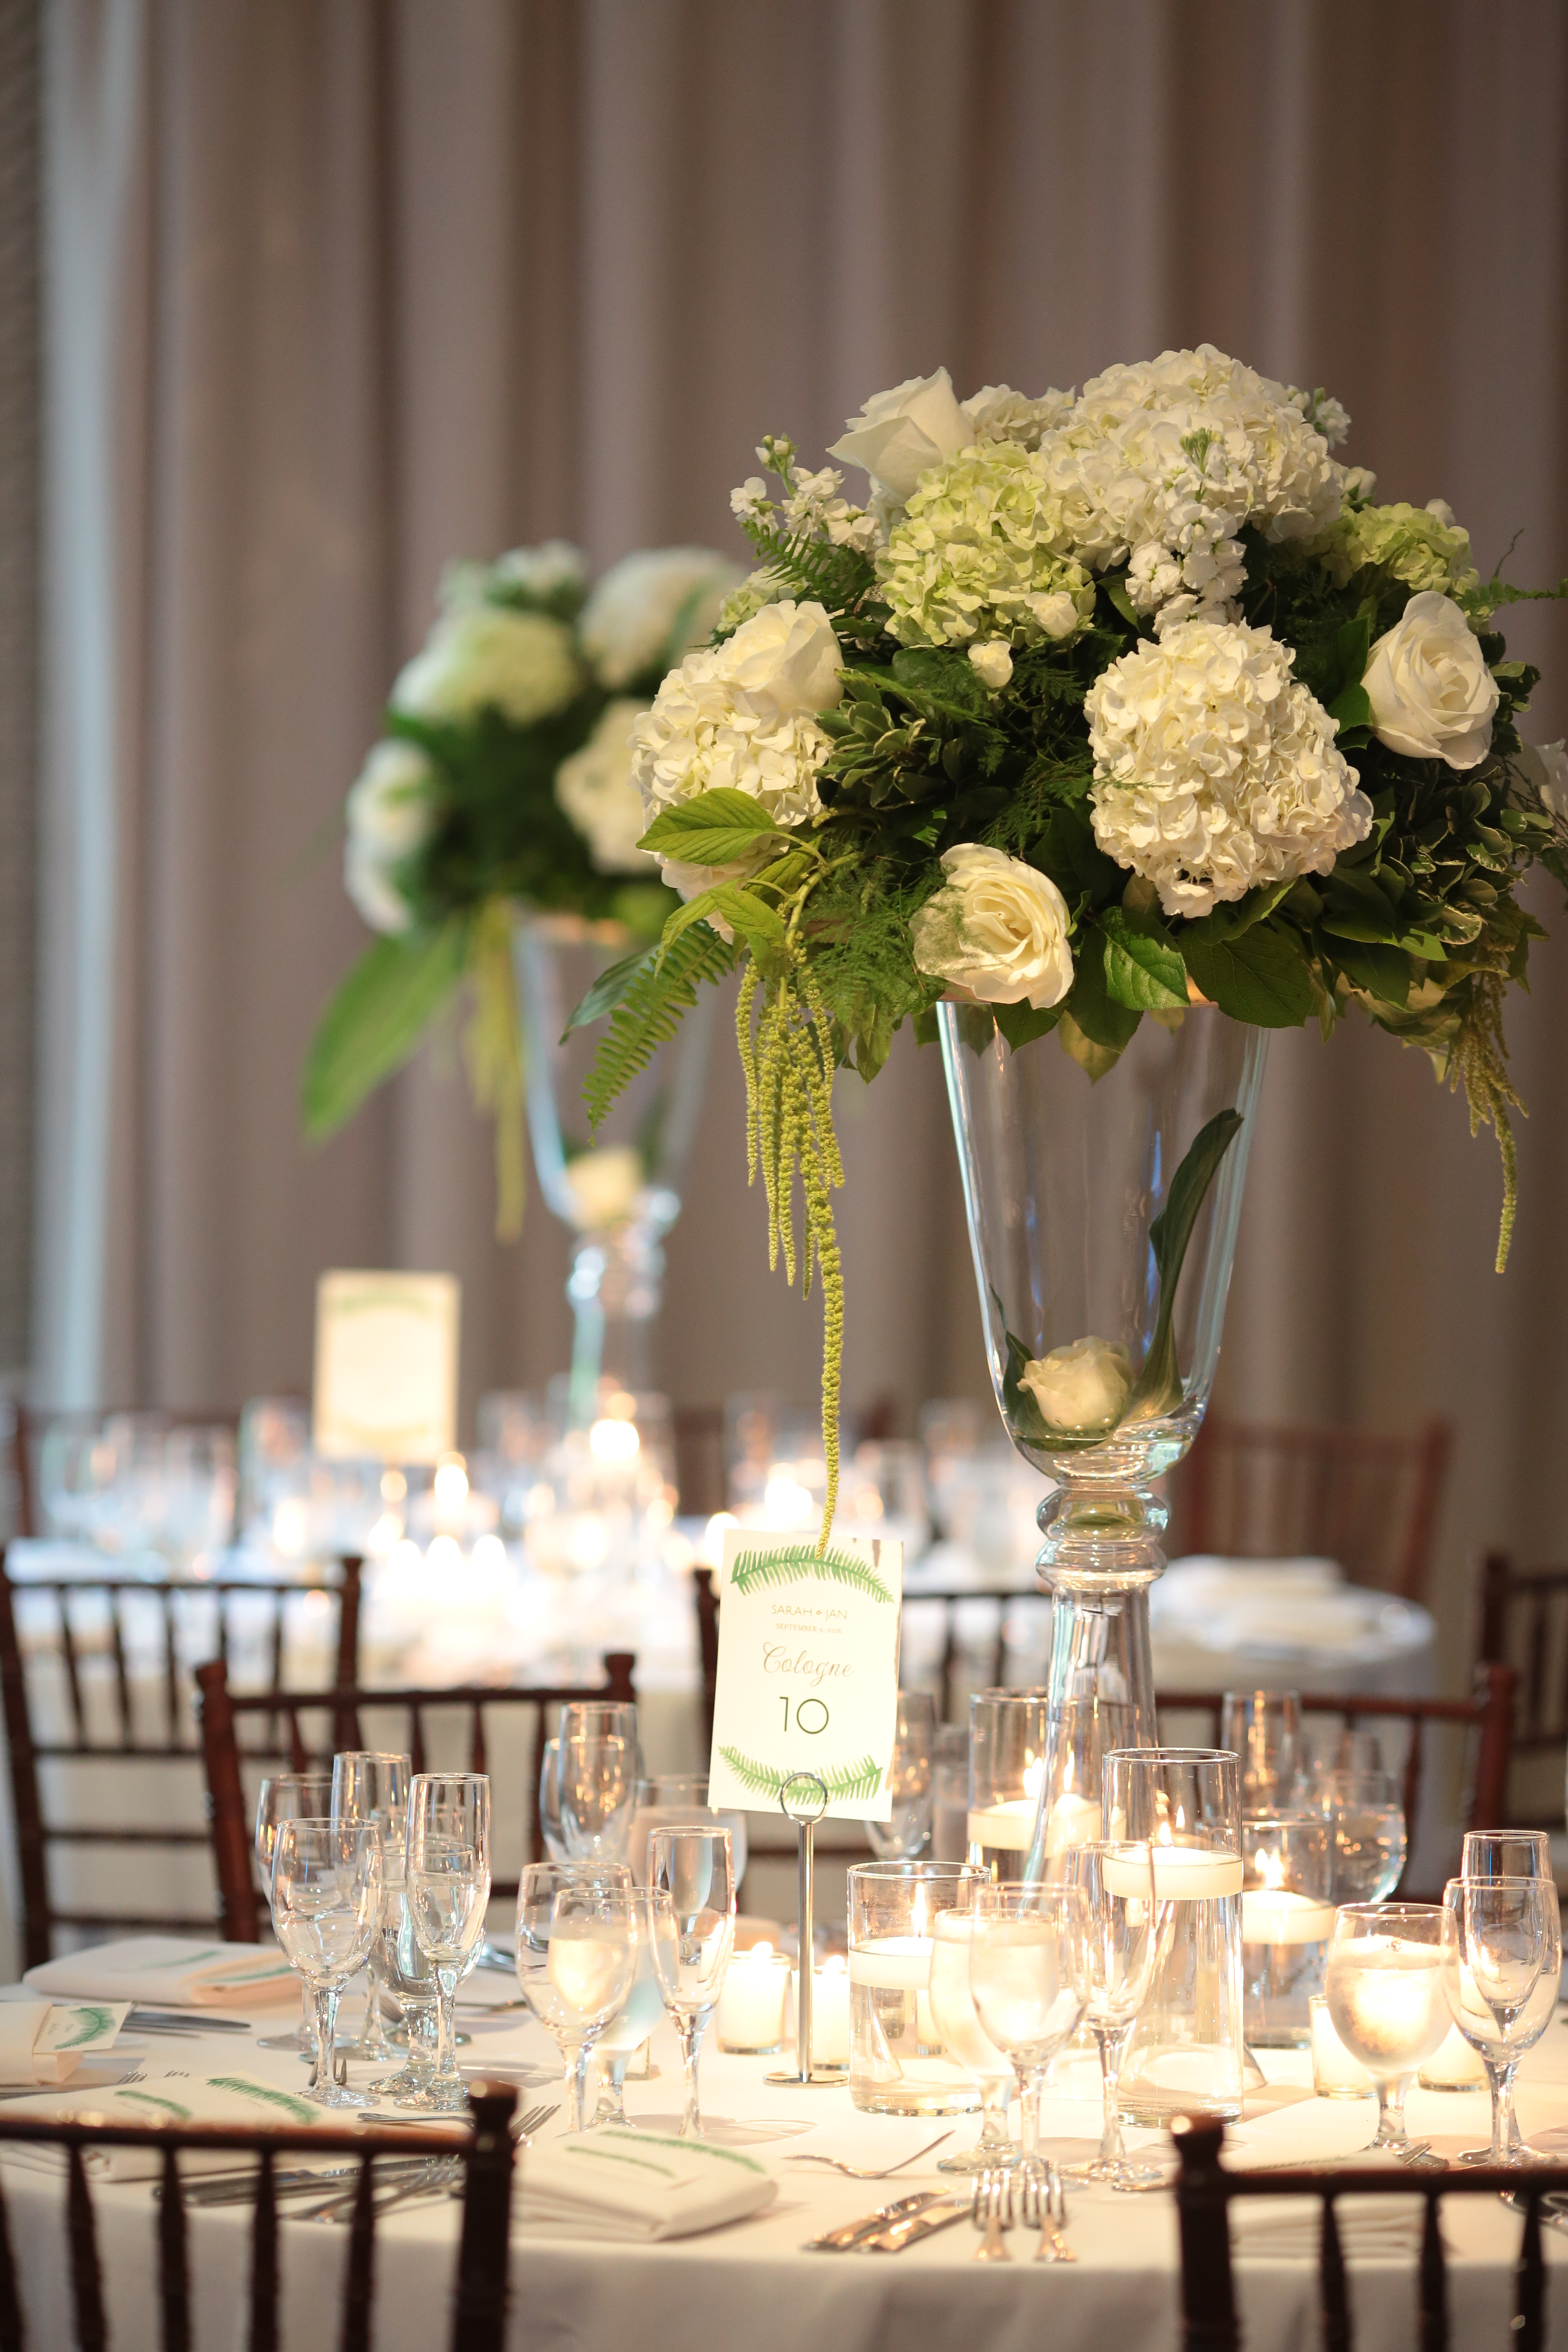 Greenery inspiration for your wedding centerpieces that is both elegant and classic. Perfect for a garden or outdoor wedding.